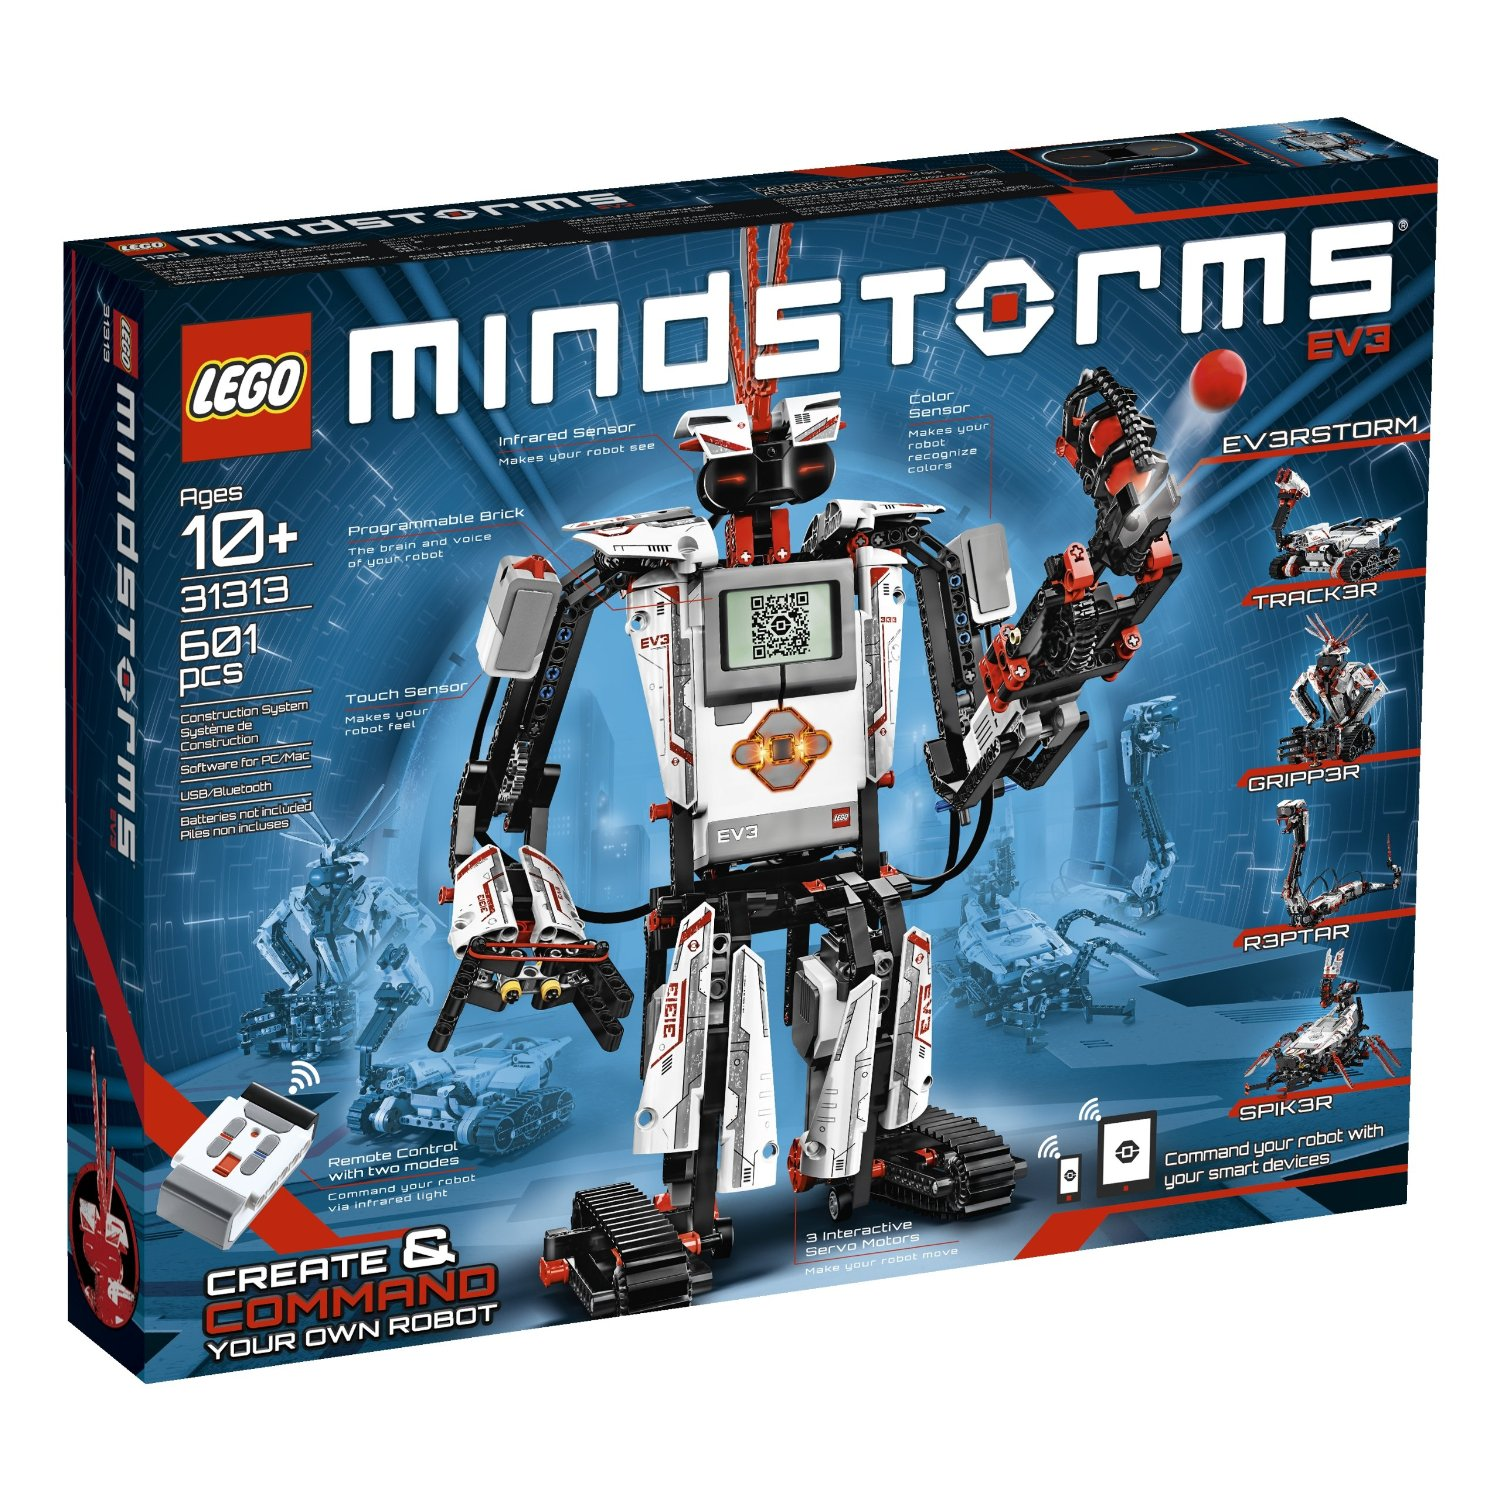 Lego Mindstorms Ev3 Set